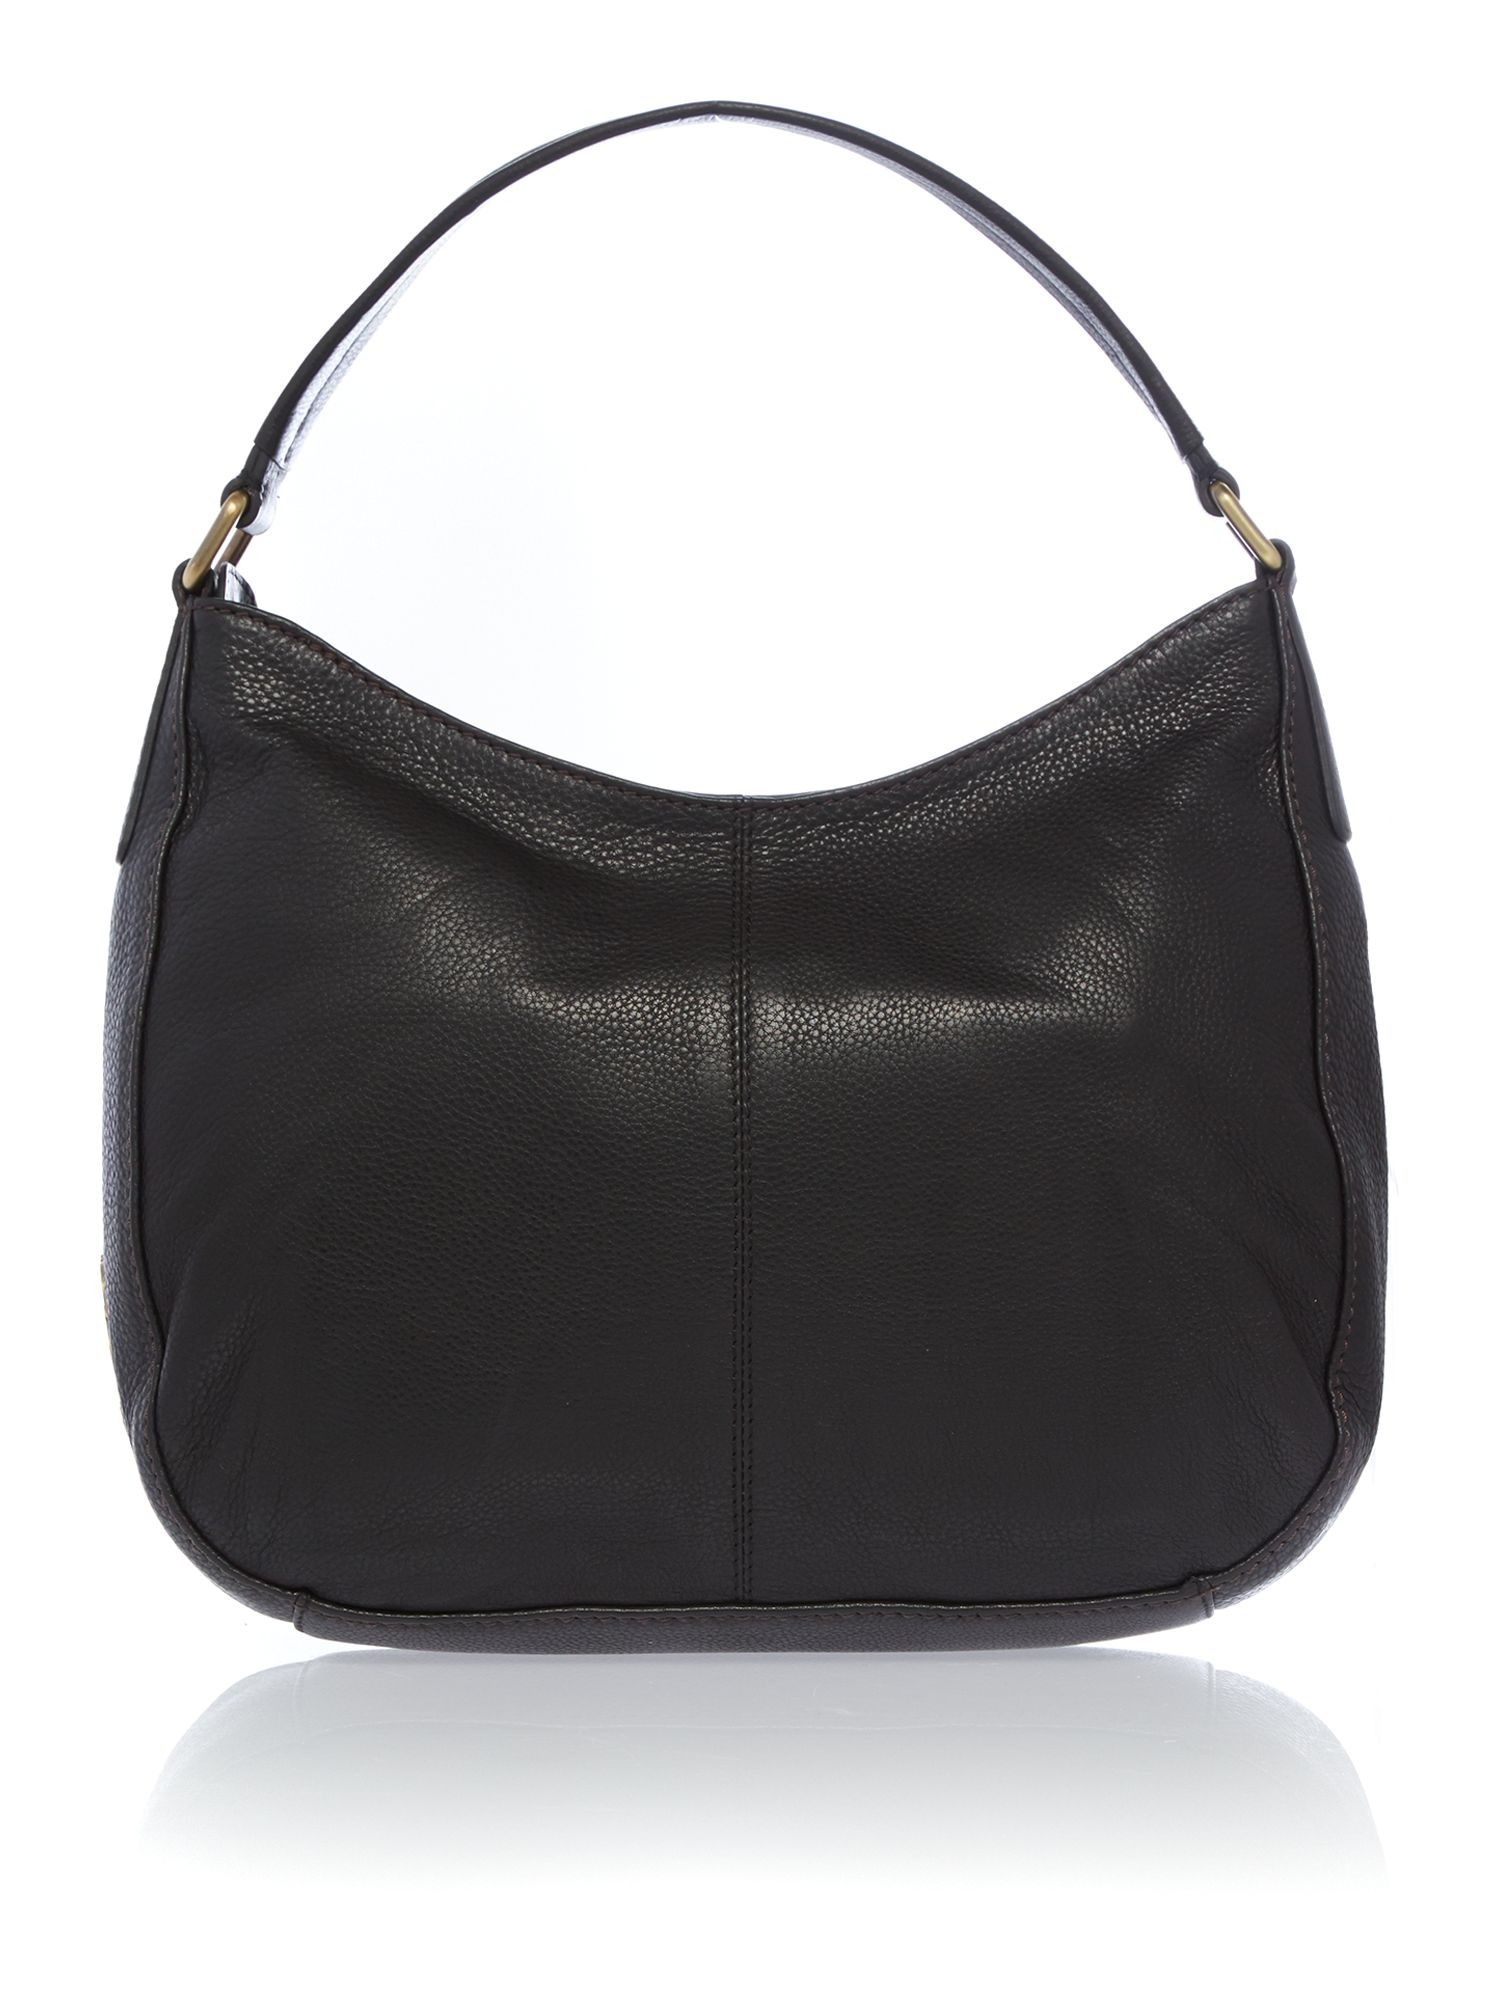 Datchet black hobo bag